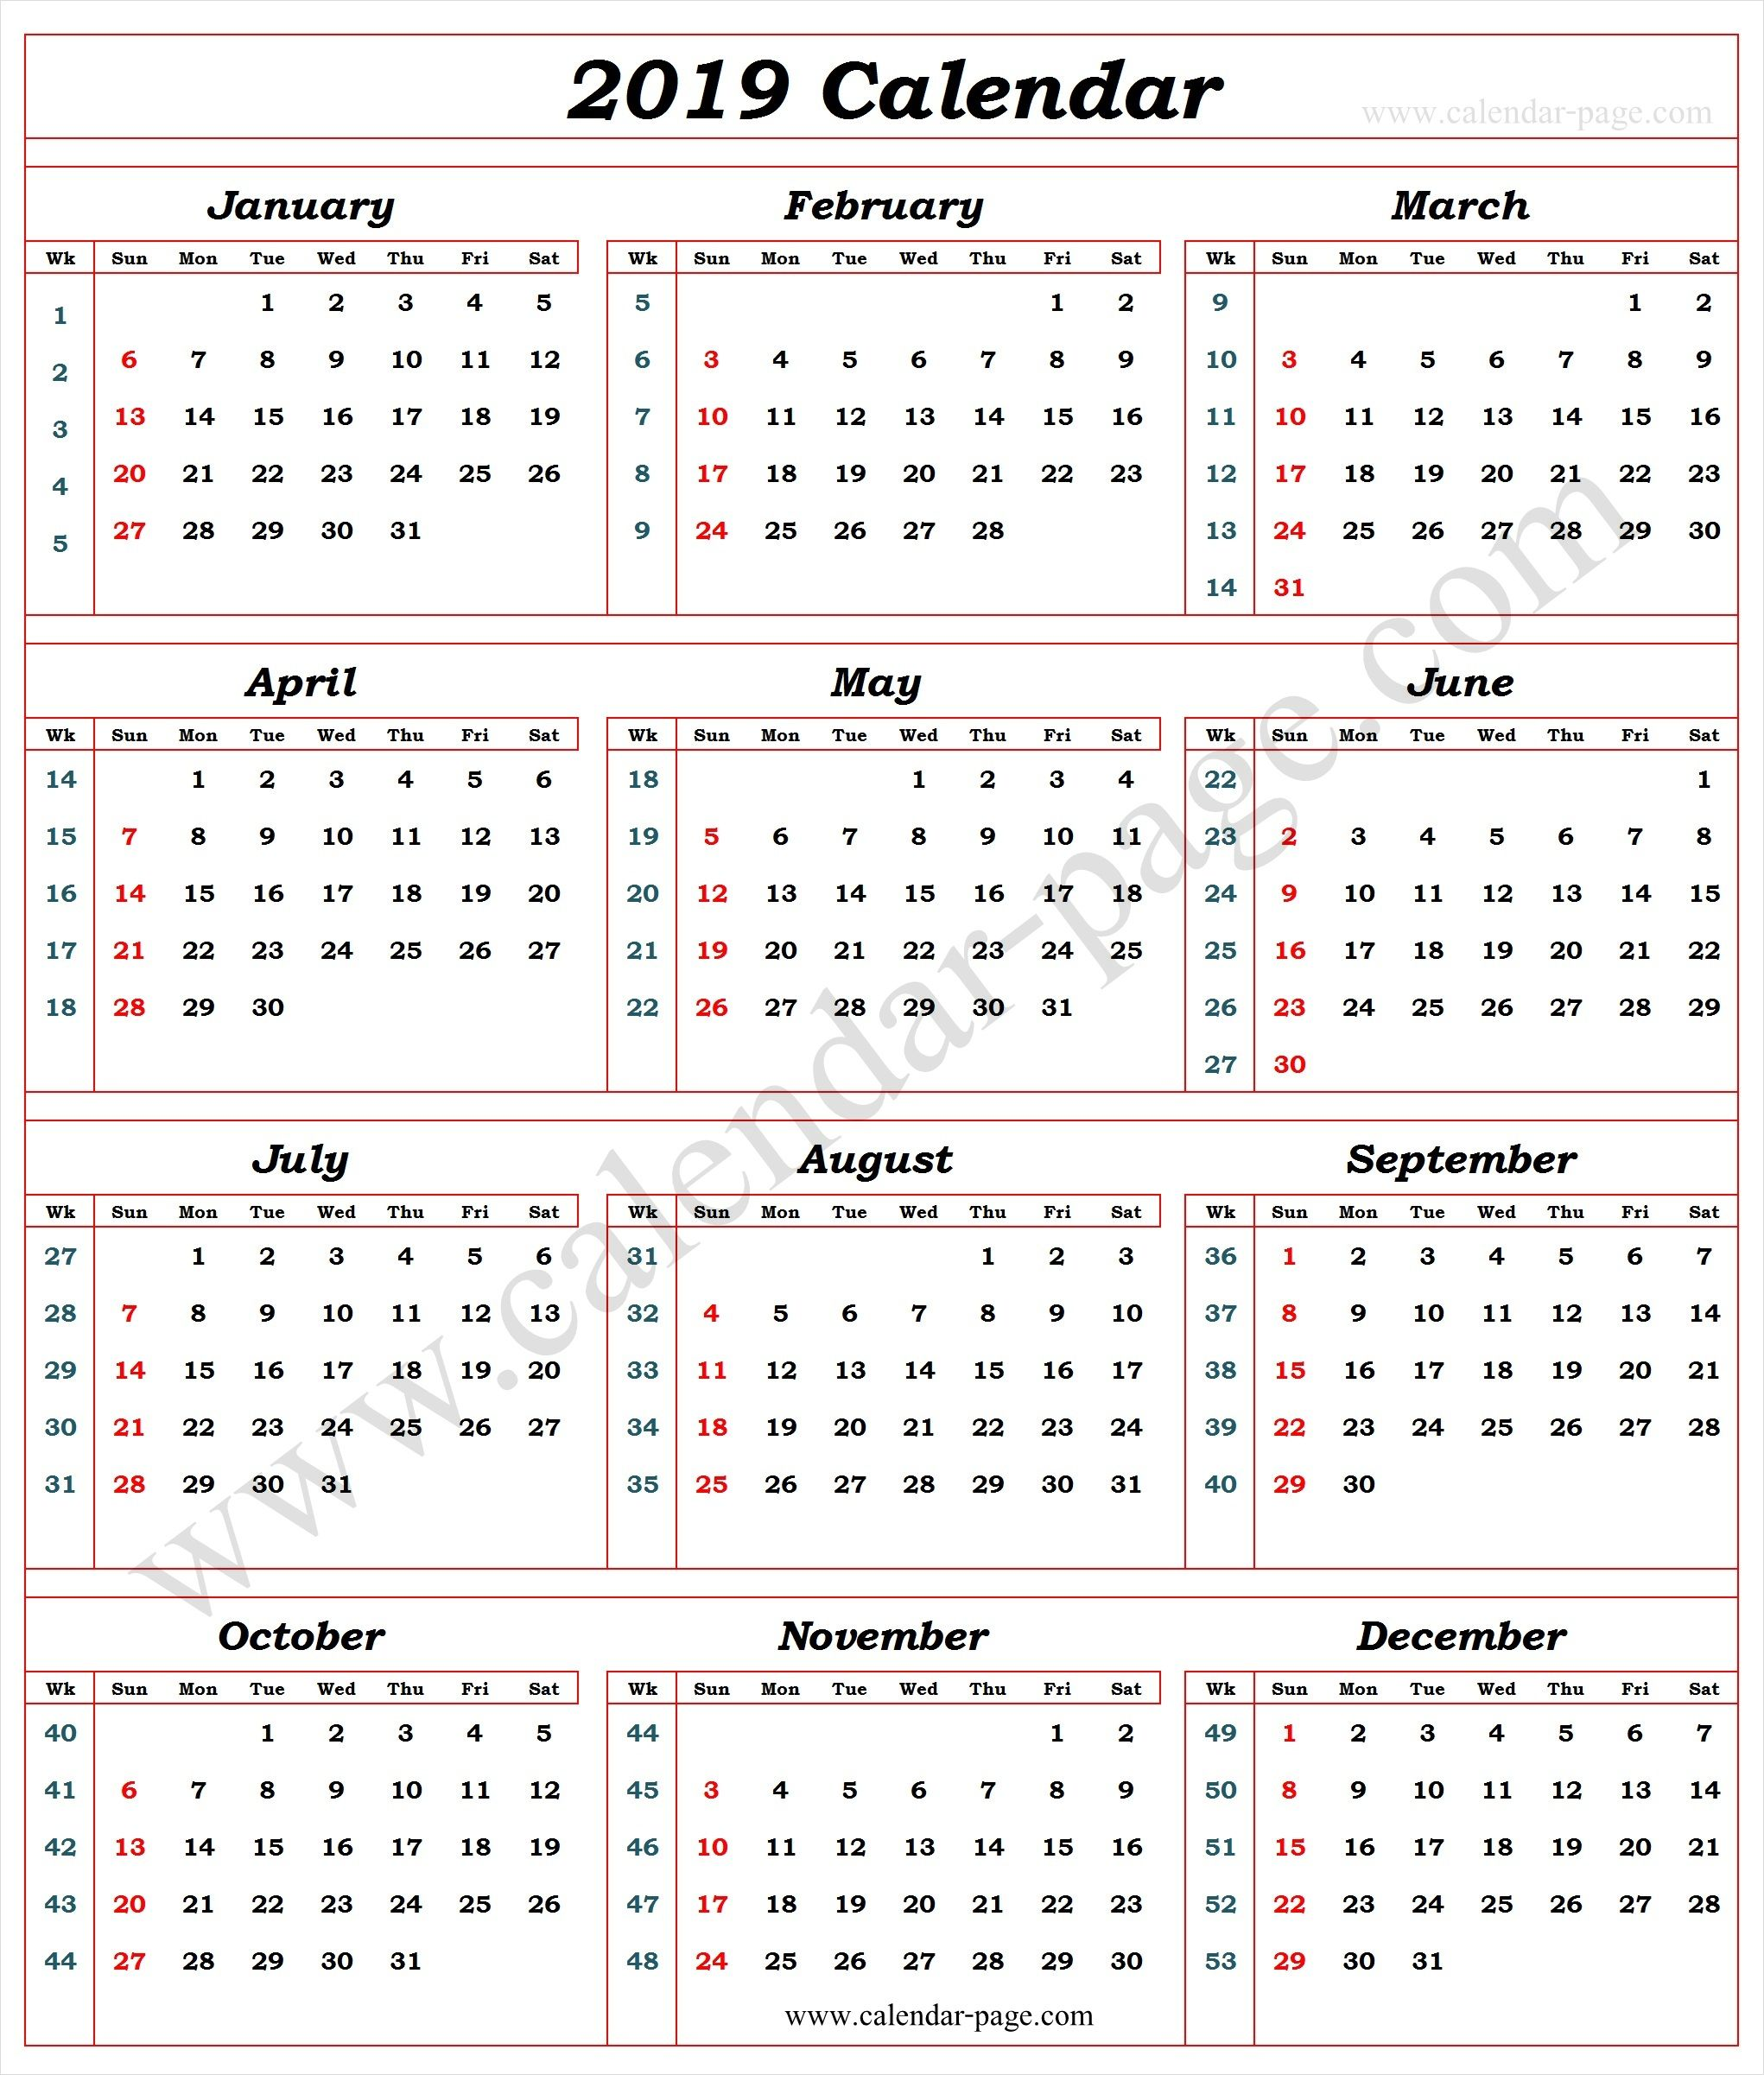 Calendar 2019 With Week Numbers Blank Calendar 2019 Calendar